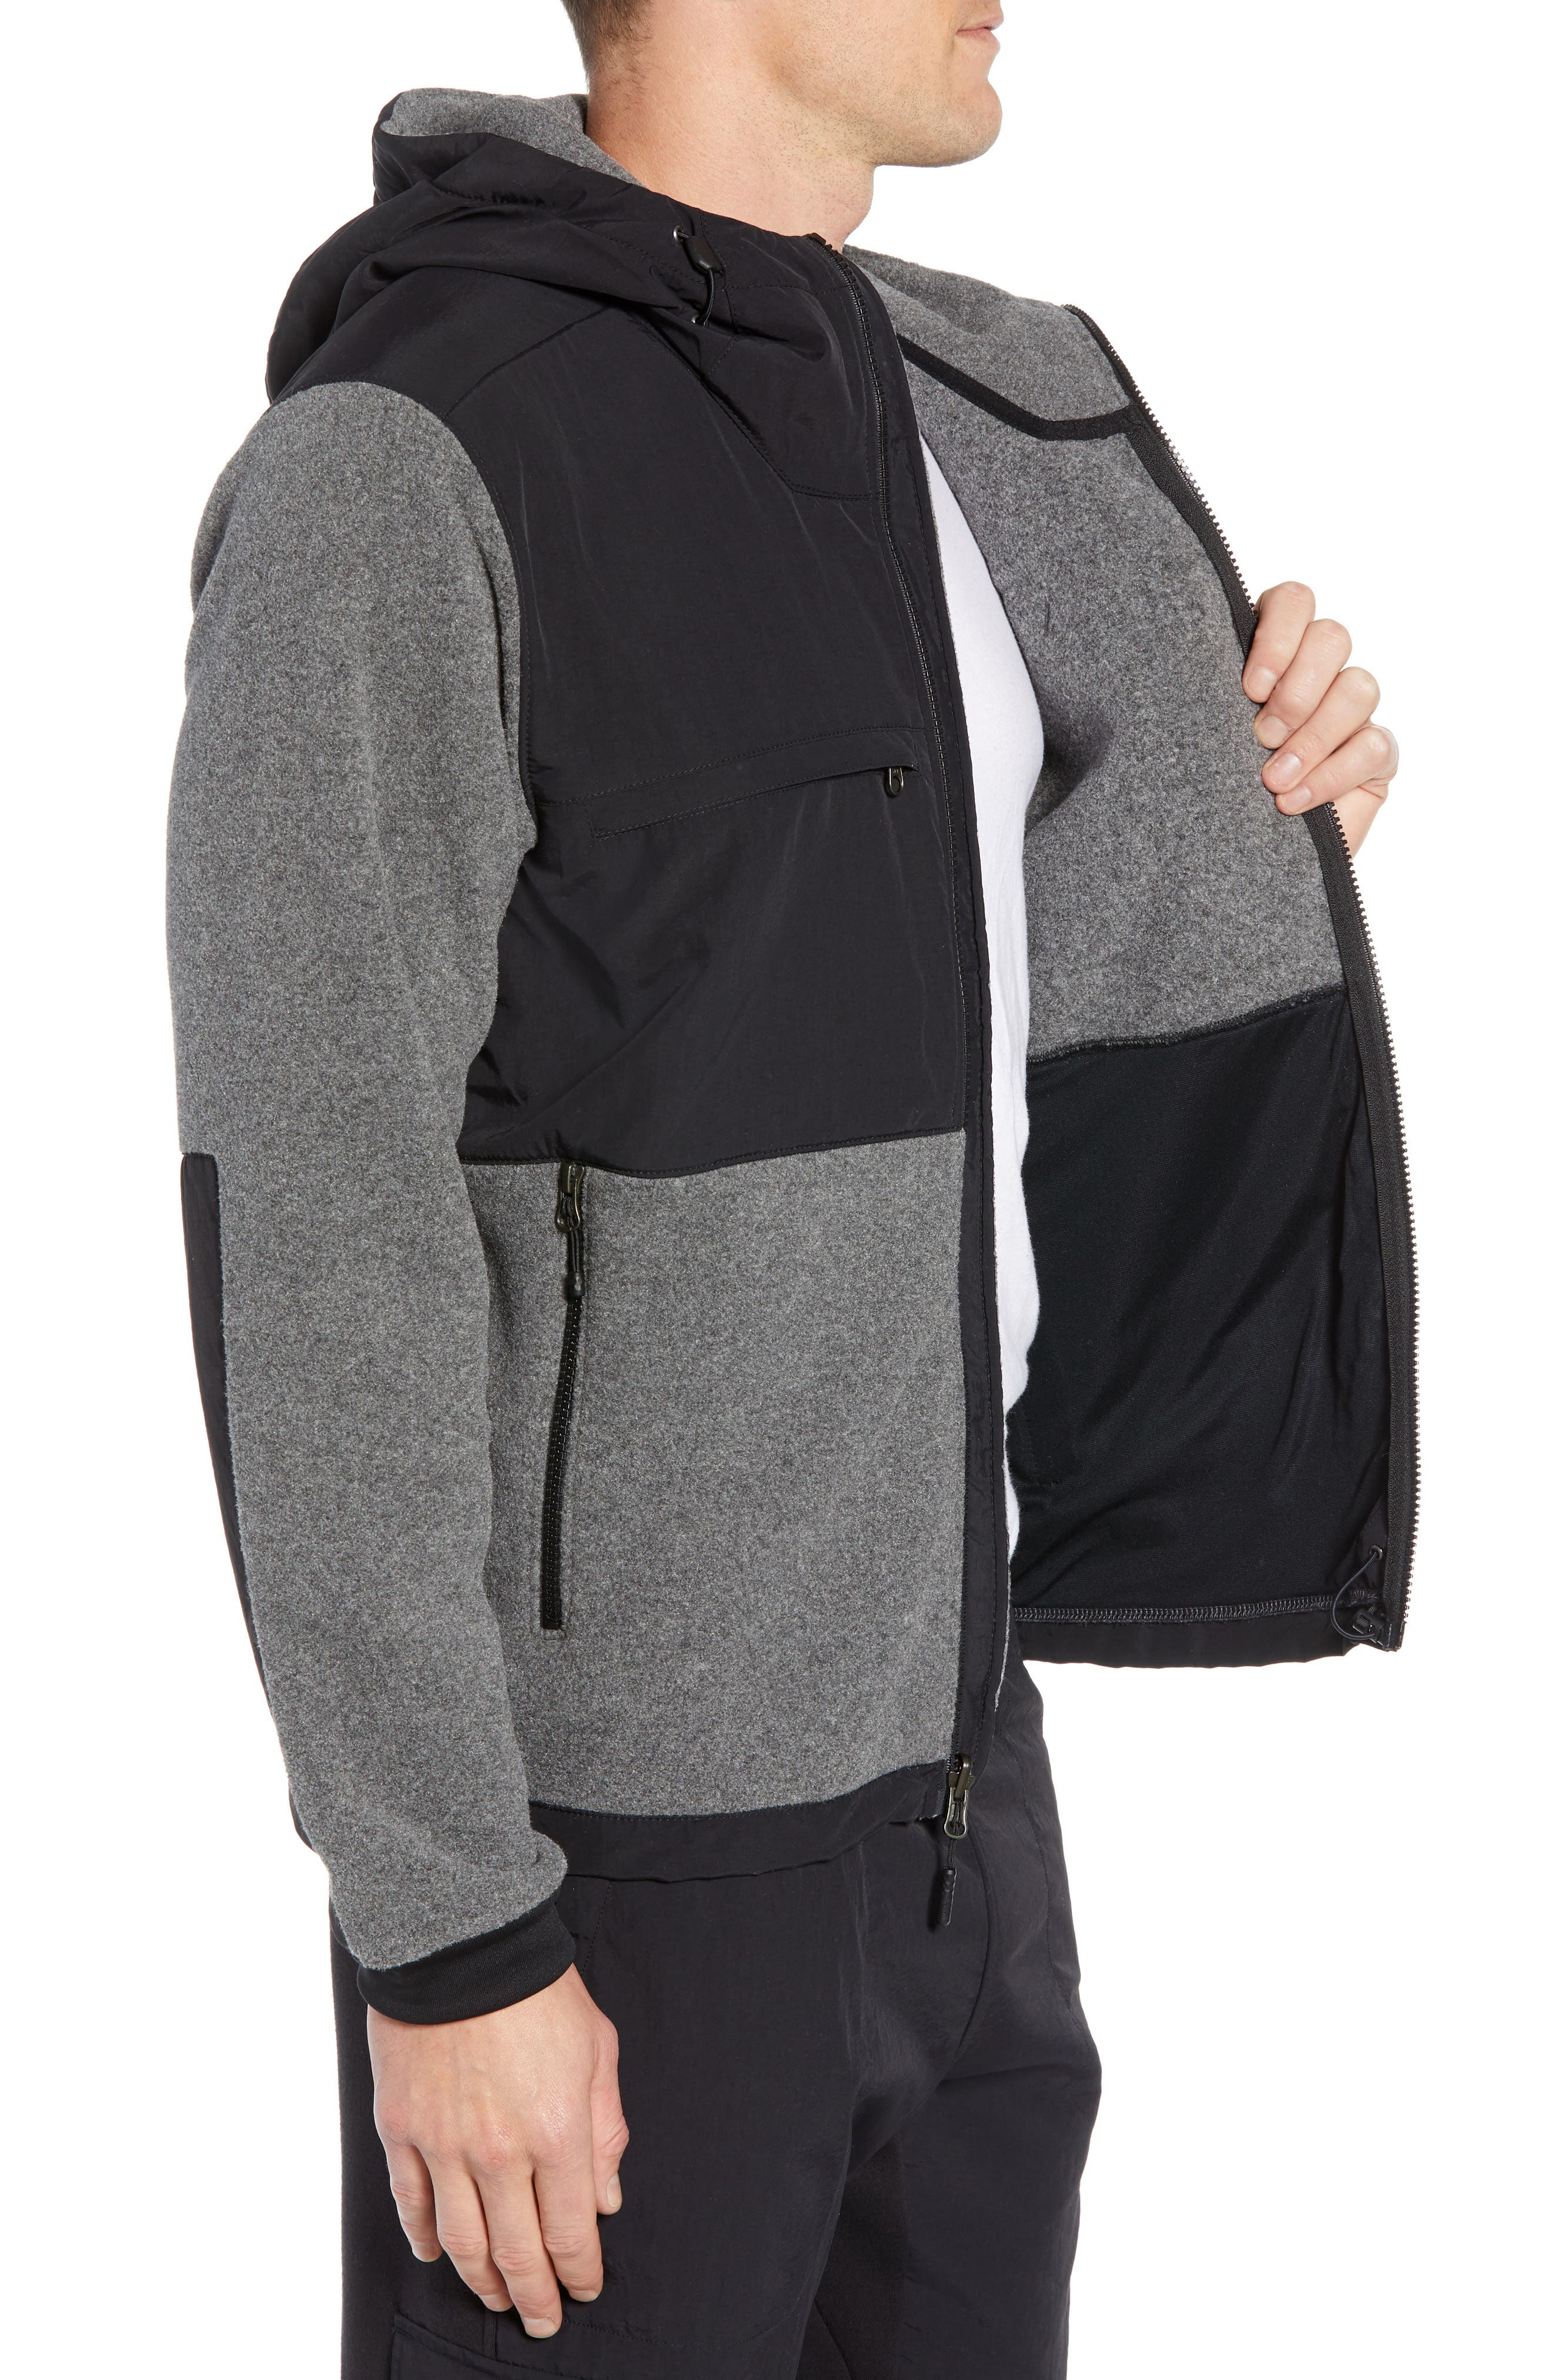 Denali 2 Hooded Jacket,                             Alternate thumbnail 3, color,                             RECYCLED CHARCOAL GREY HEATHER